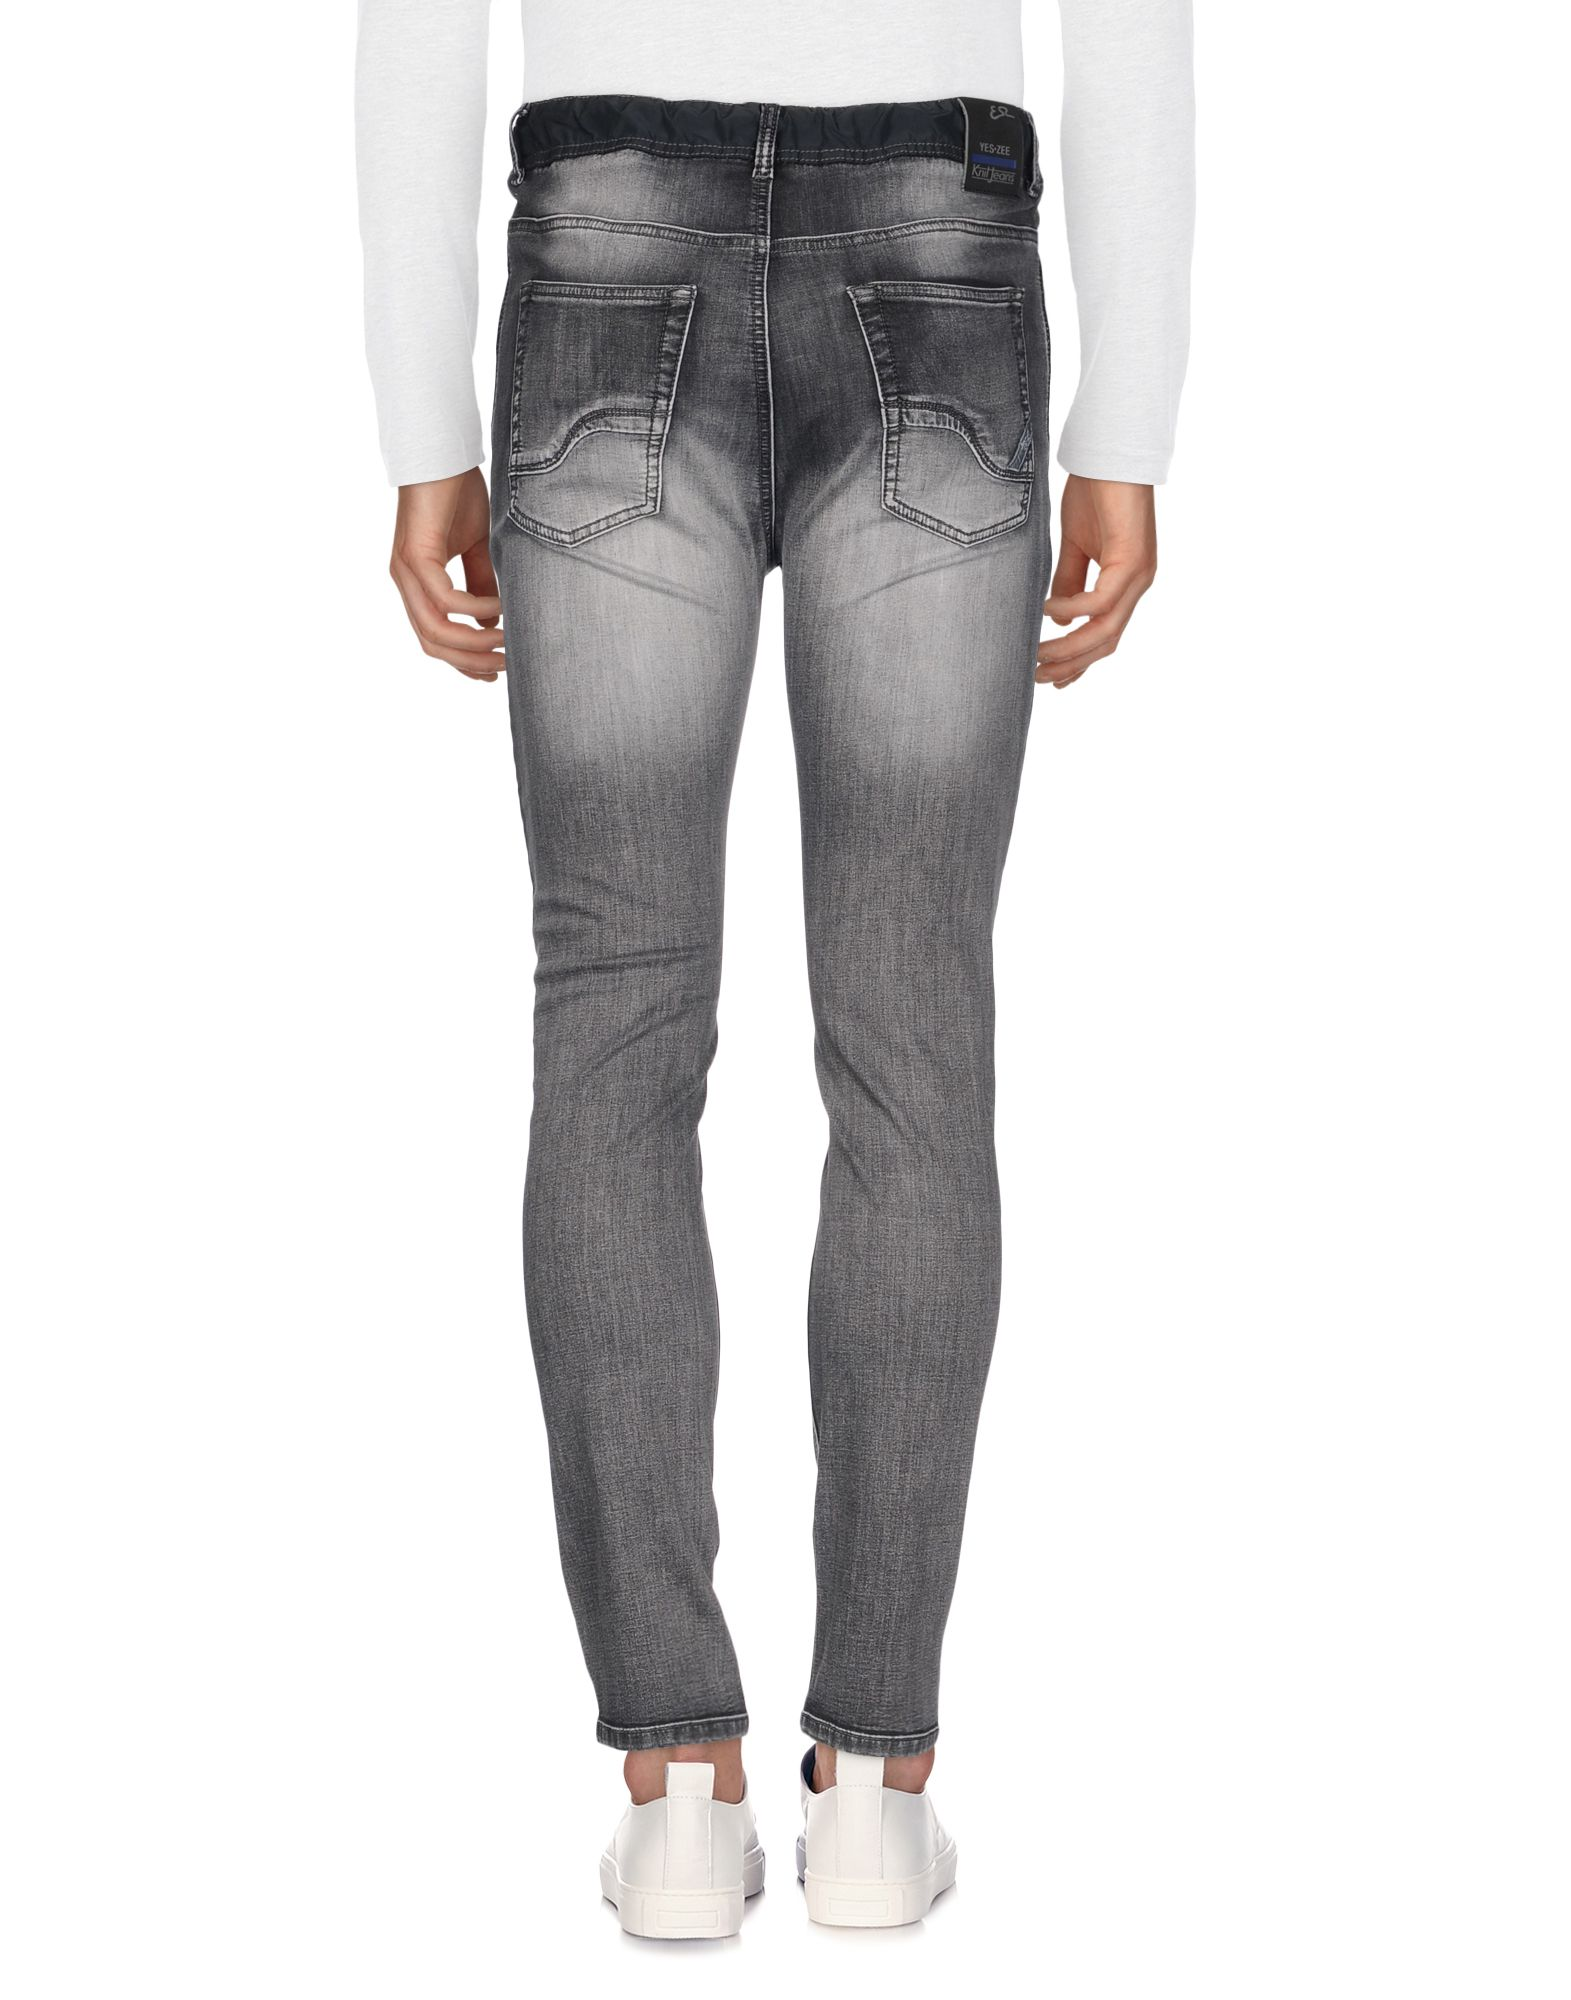 Pantaloni Essenza Jeans Yes Zee By Essenza Pantaloni Uomo - 42682472BJ add1f4